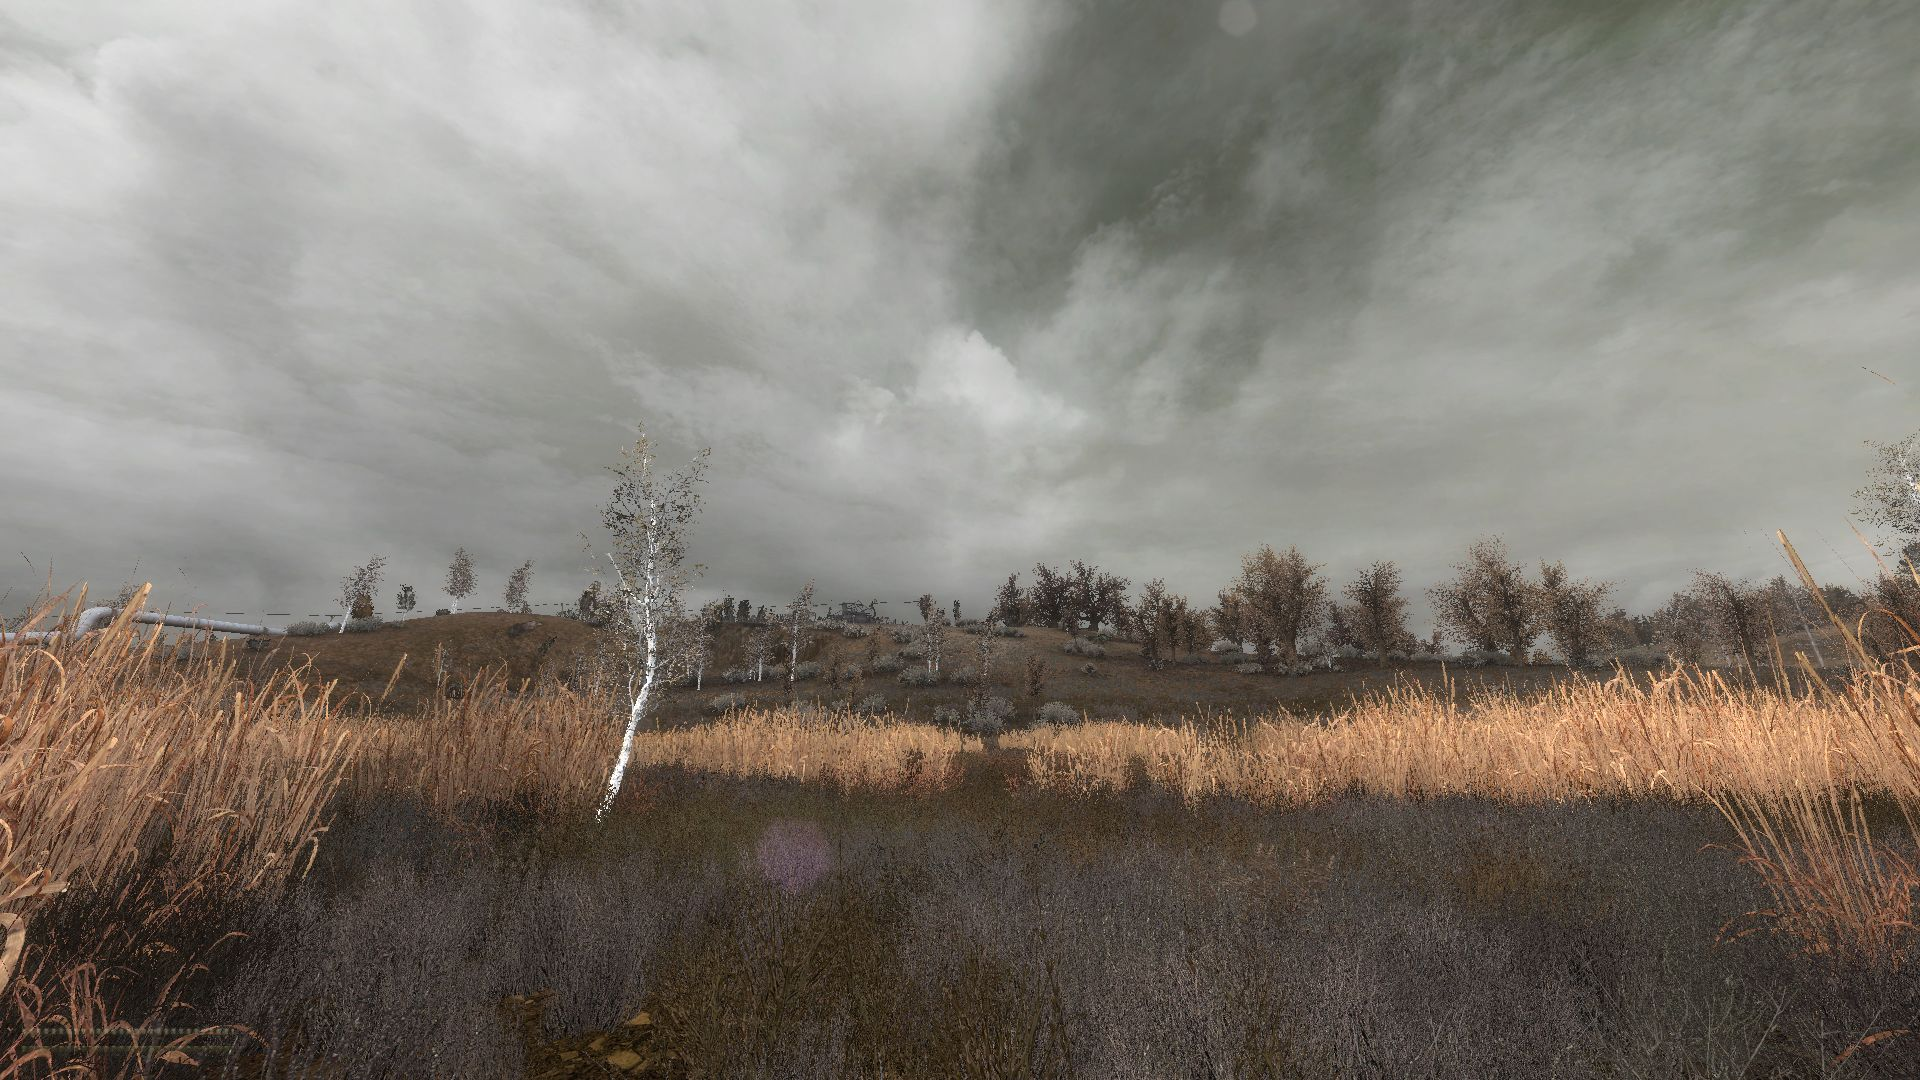 00062.Jpg - S.T.A.L.K.E.R.: Call of Pripyat